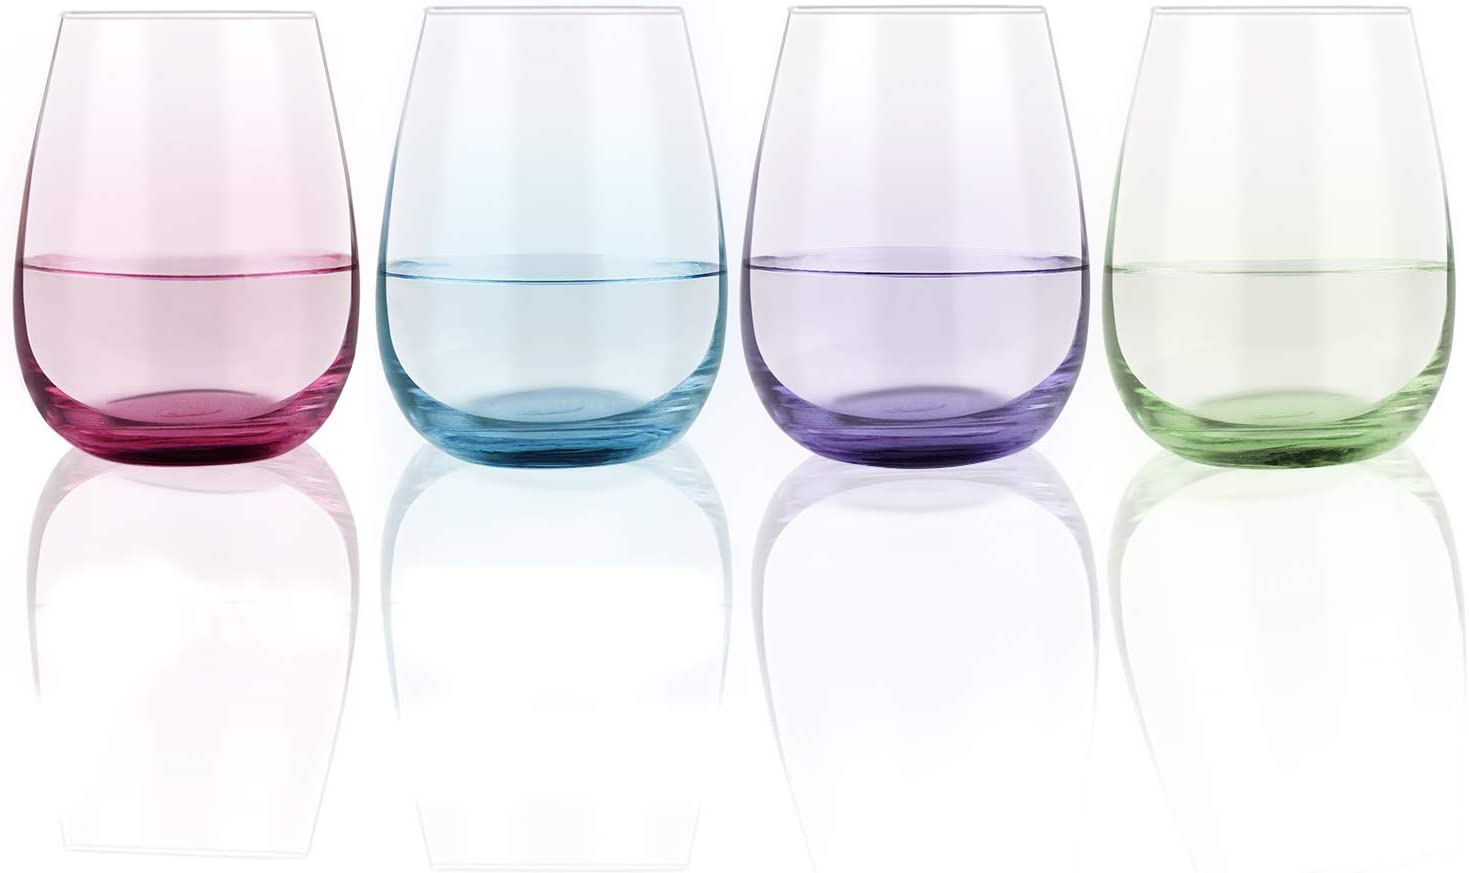 Set of 4 Colorful Stemless Wine Glasses, Colored Wine Glass 15Oz for Red and White Wine Cocktail Water Coffee Tea - Great Gift for Birthday Wedding Engagement Christmas (Blue, Purple, Green, Rose Red)